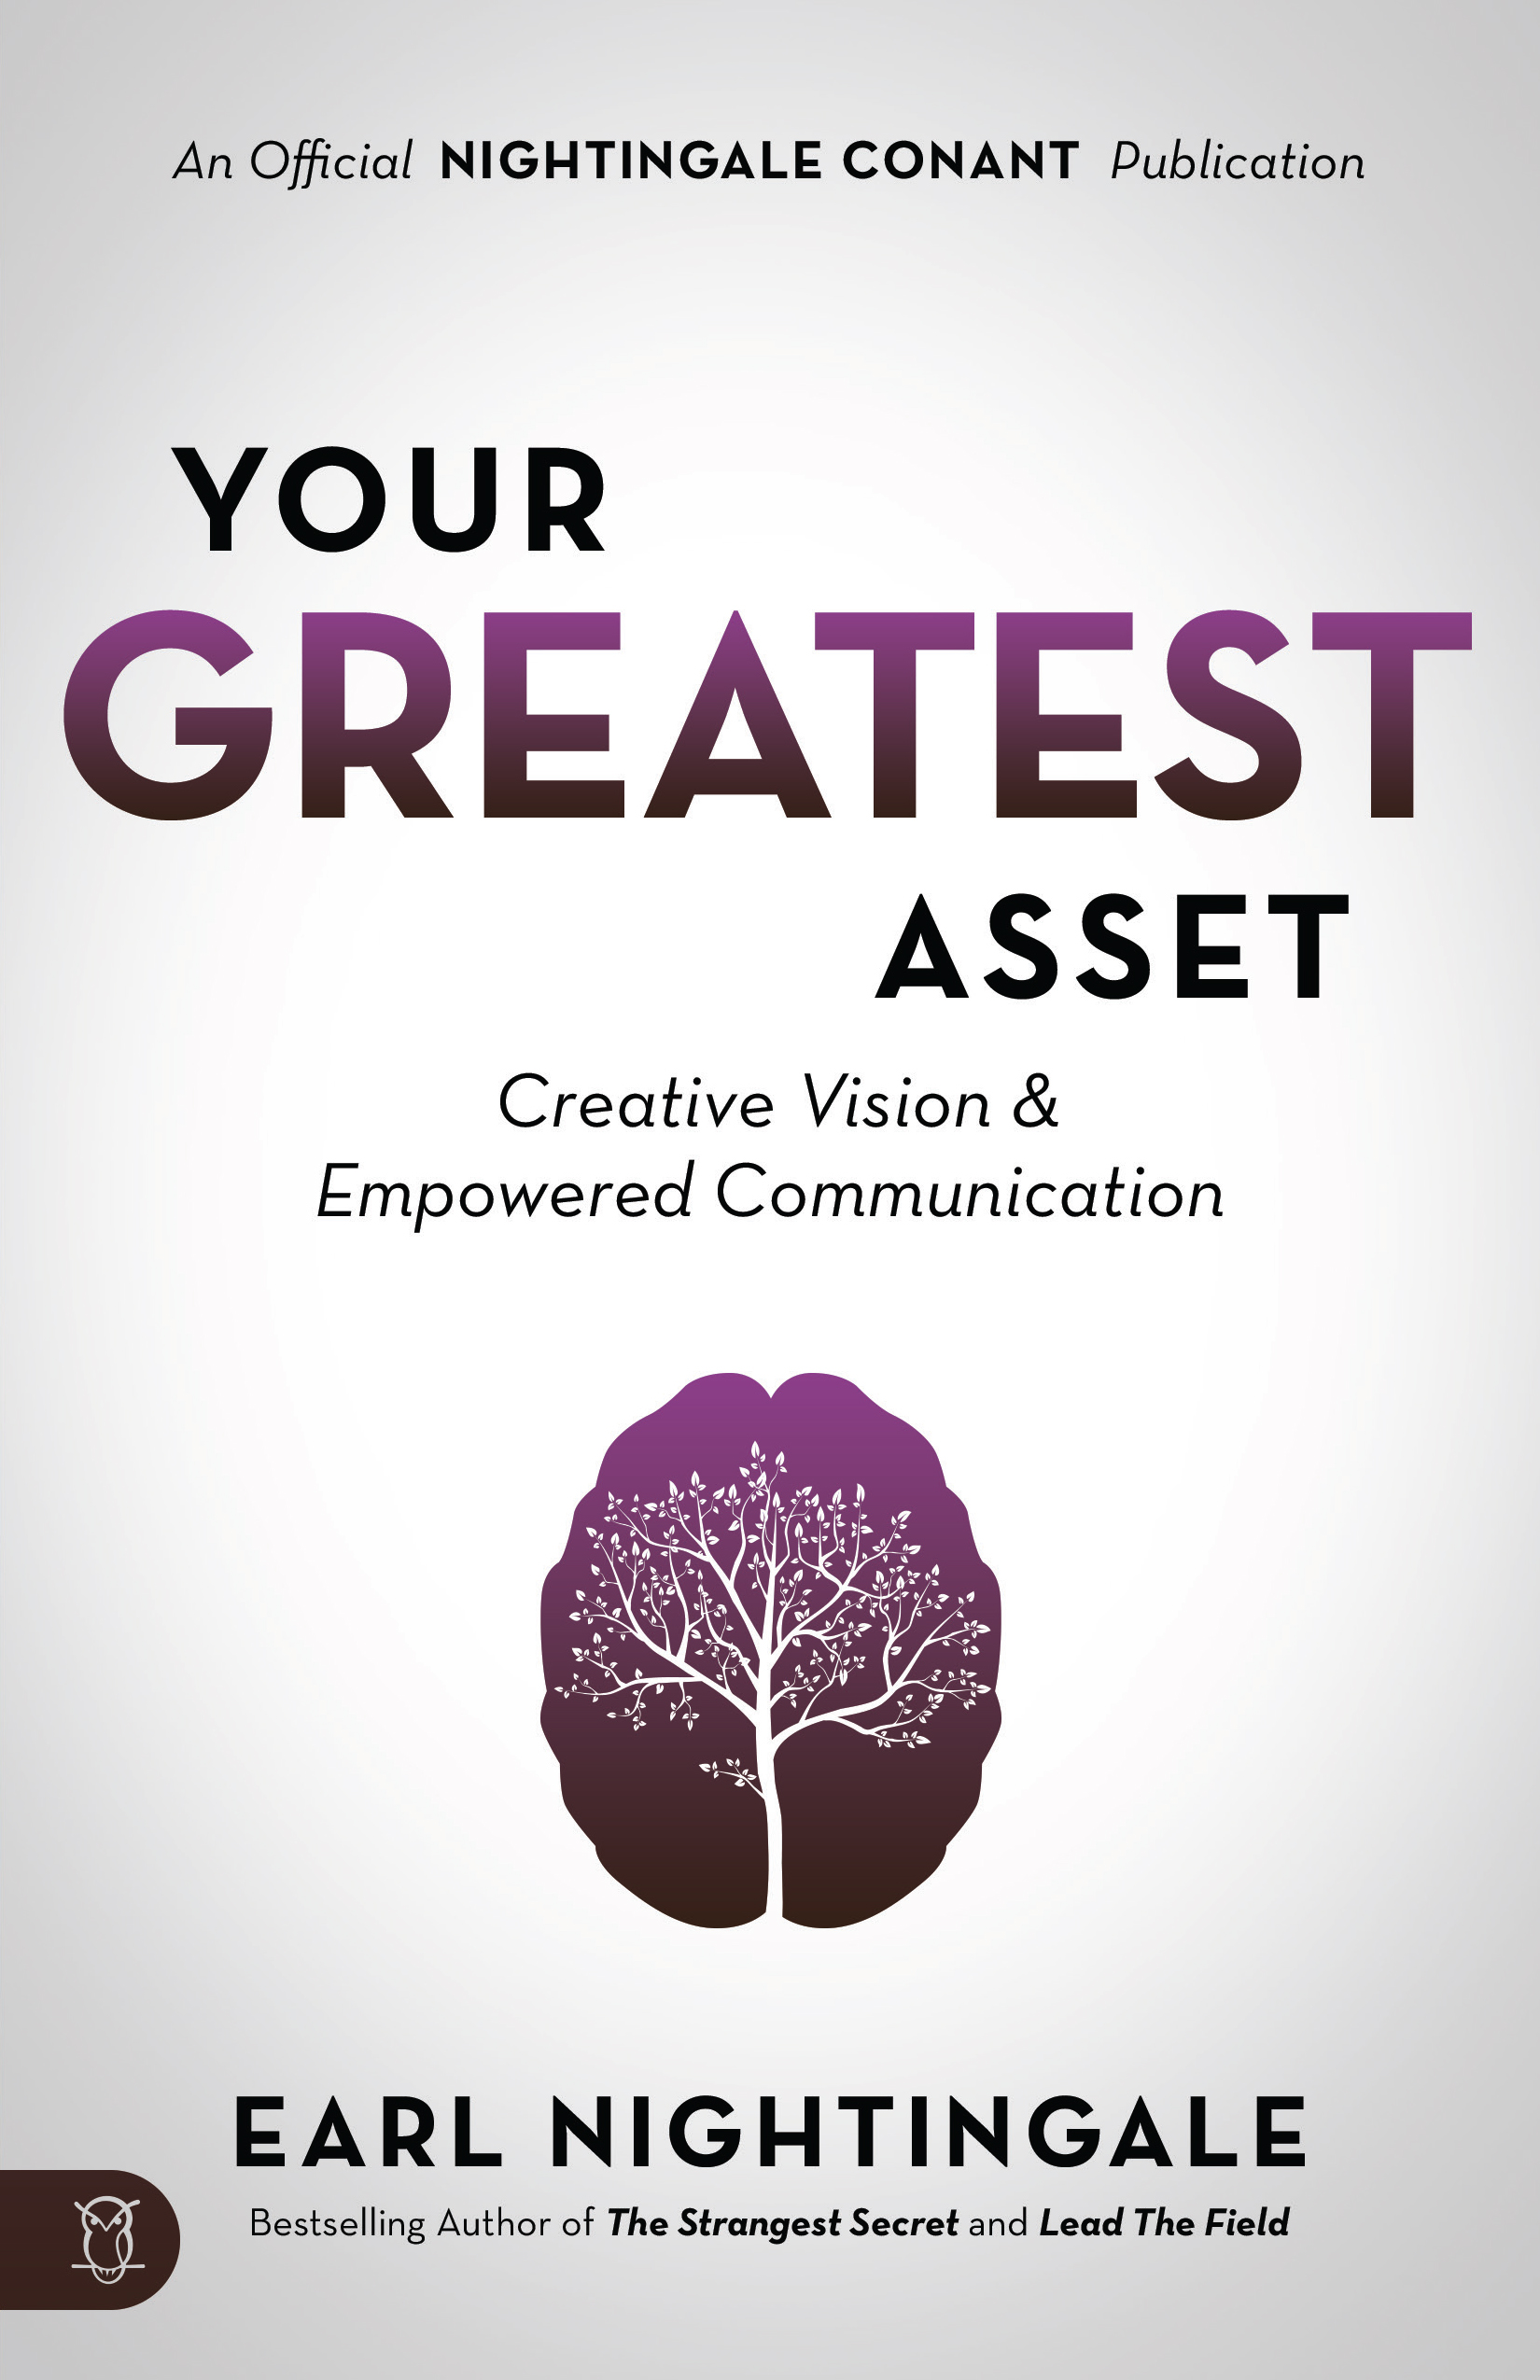 Your Greatest Asset - By Earl Nightingale